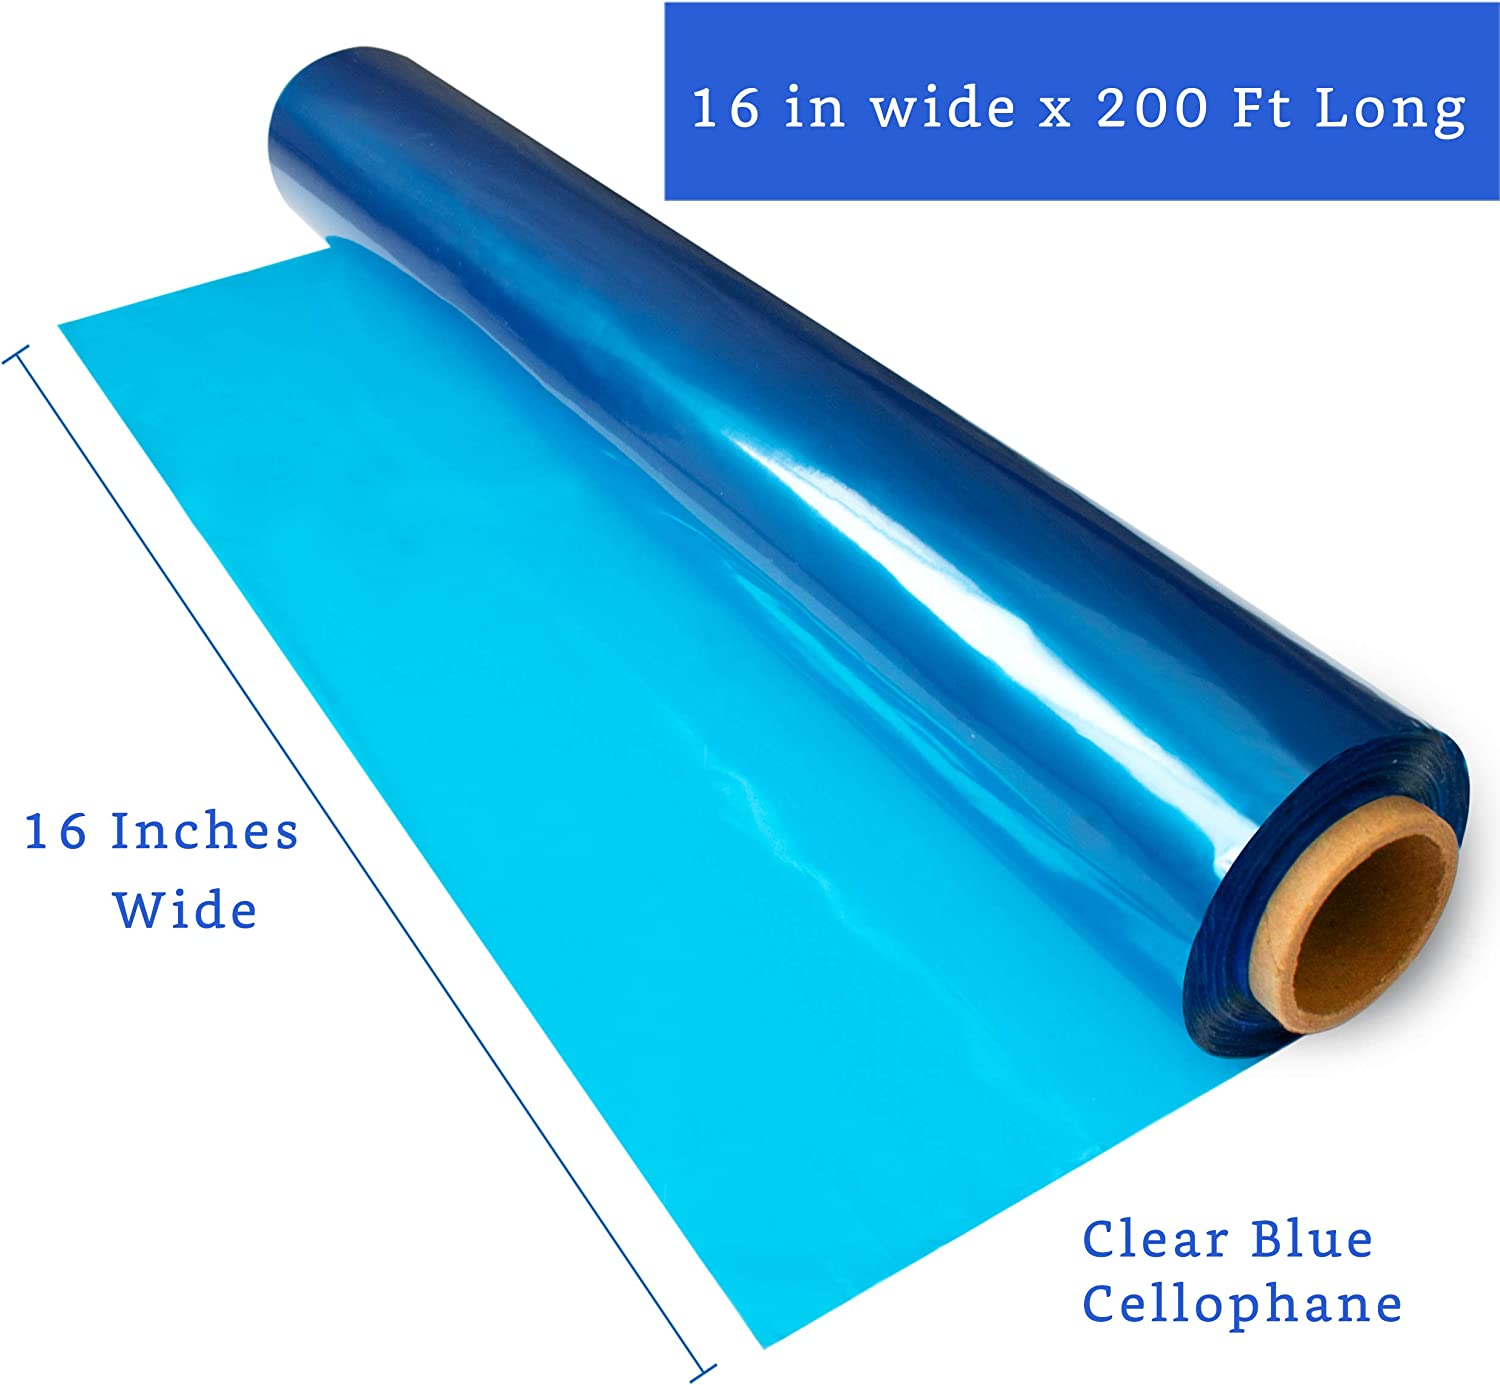 16 in x 200 ft 200 ft Blue Cellophane Wrap Roll Cellophane Paper Colored Cellophane Wrap Blue Clear Wrap - Colored Cellophane Roll Cellophane Roll Blue- Blue Roll Blue Transparent Paper